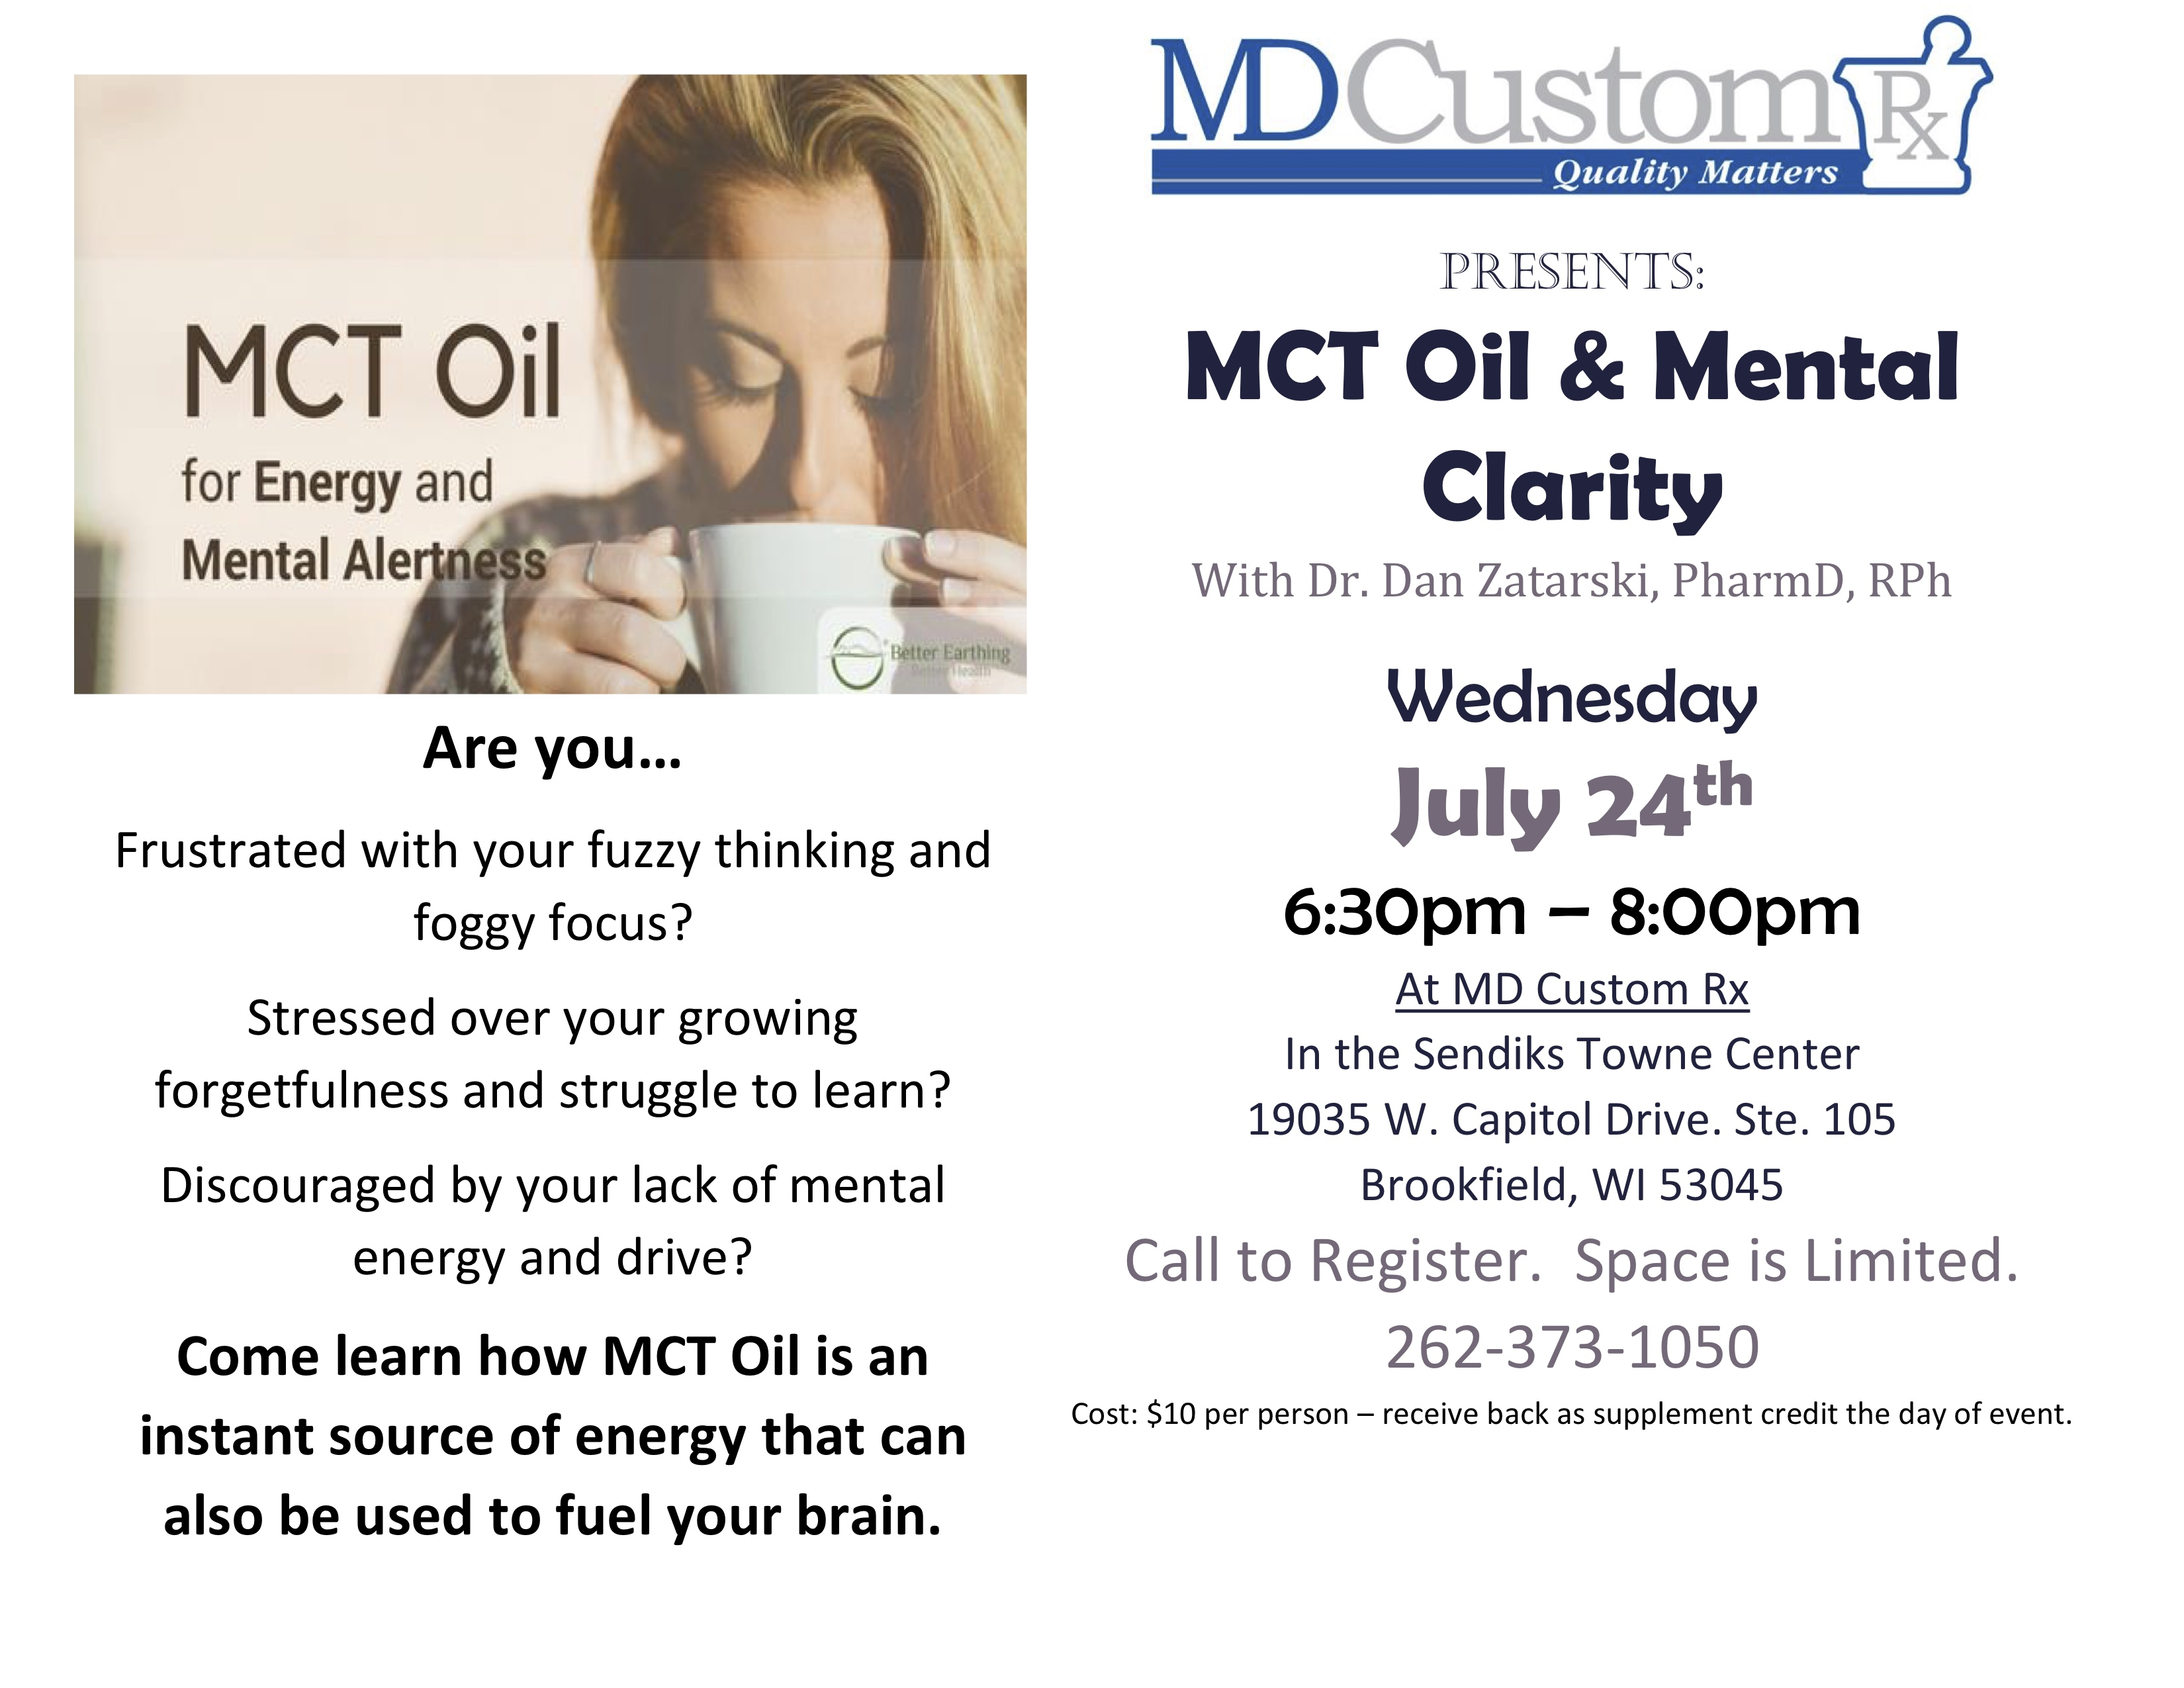 MCT Oil and Mental Clarity